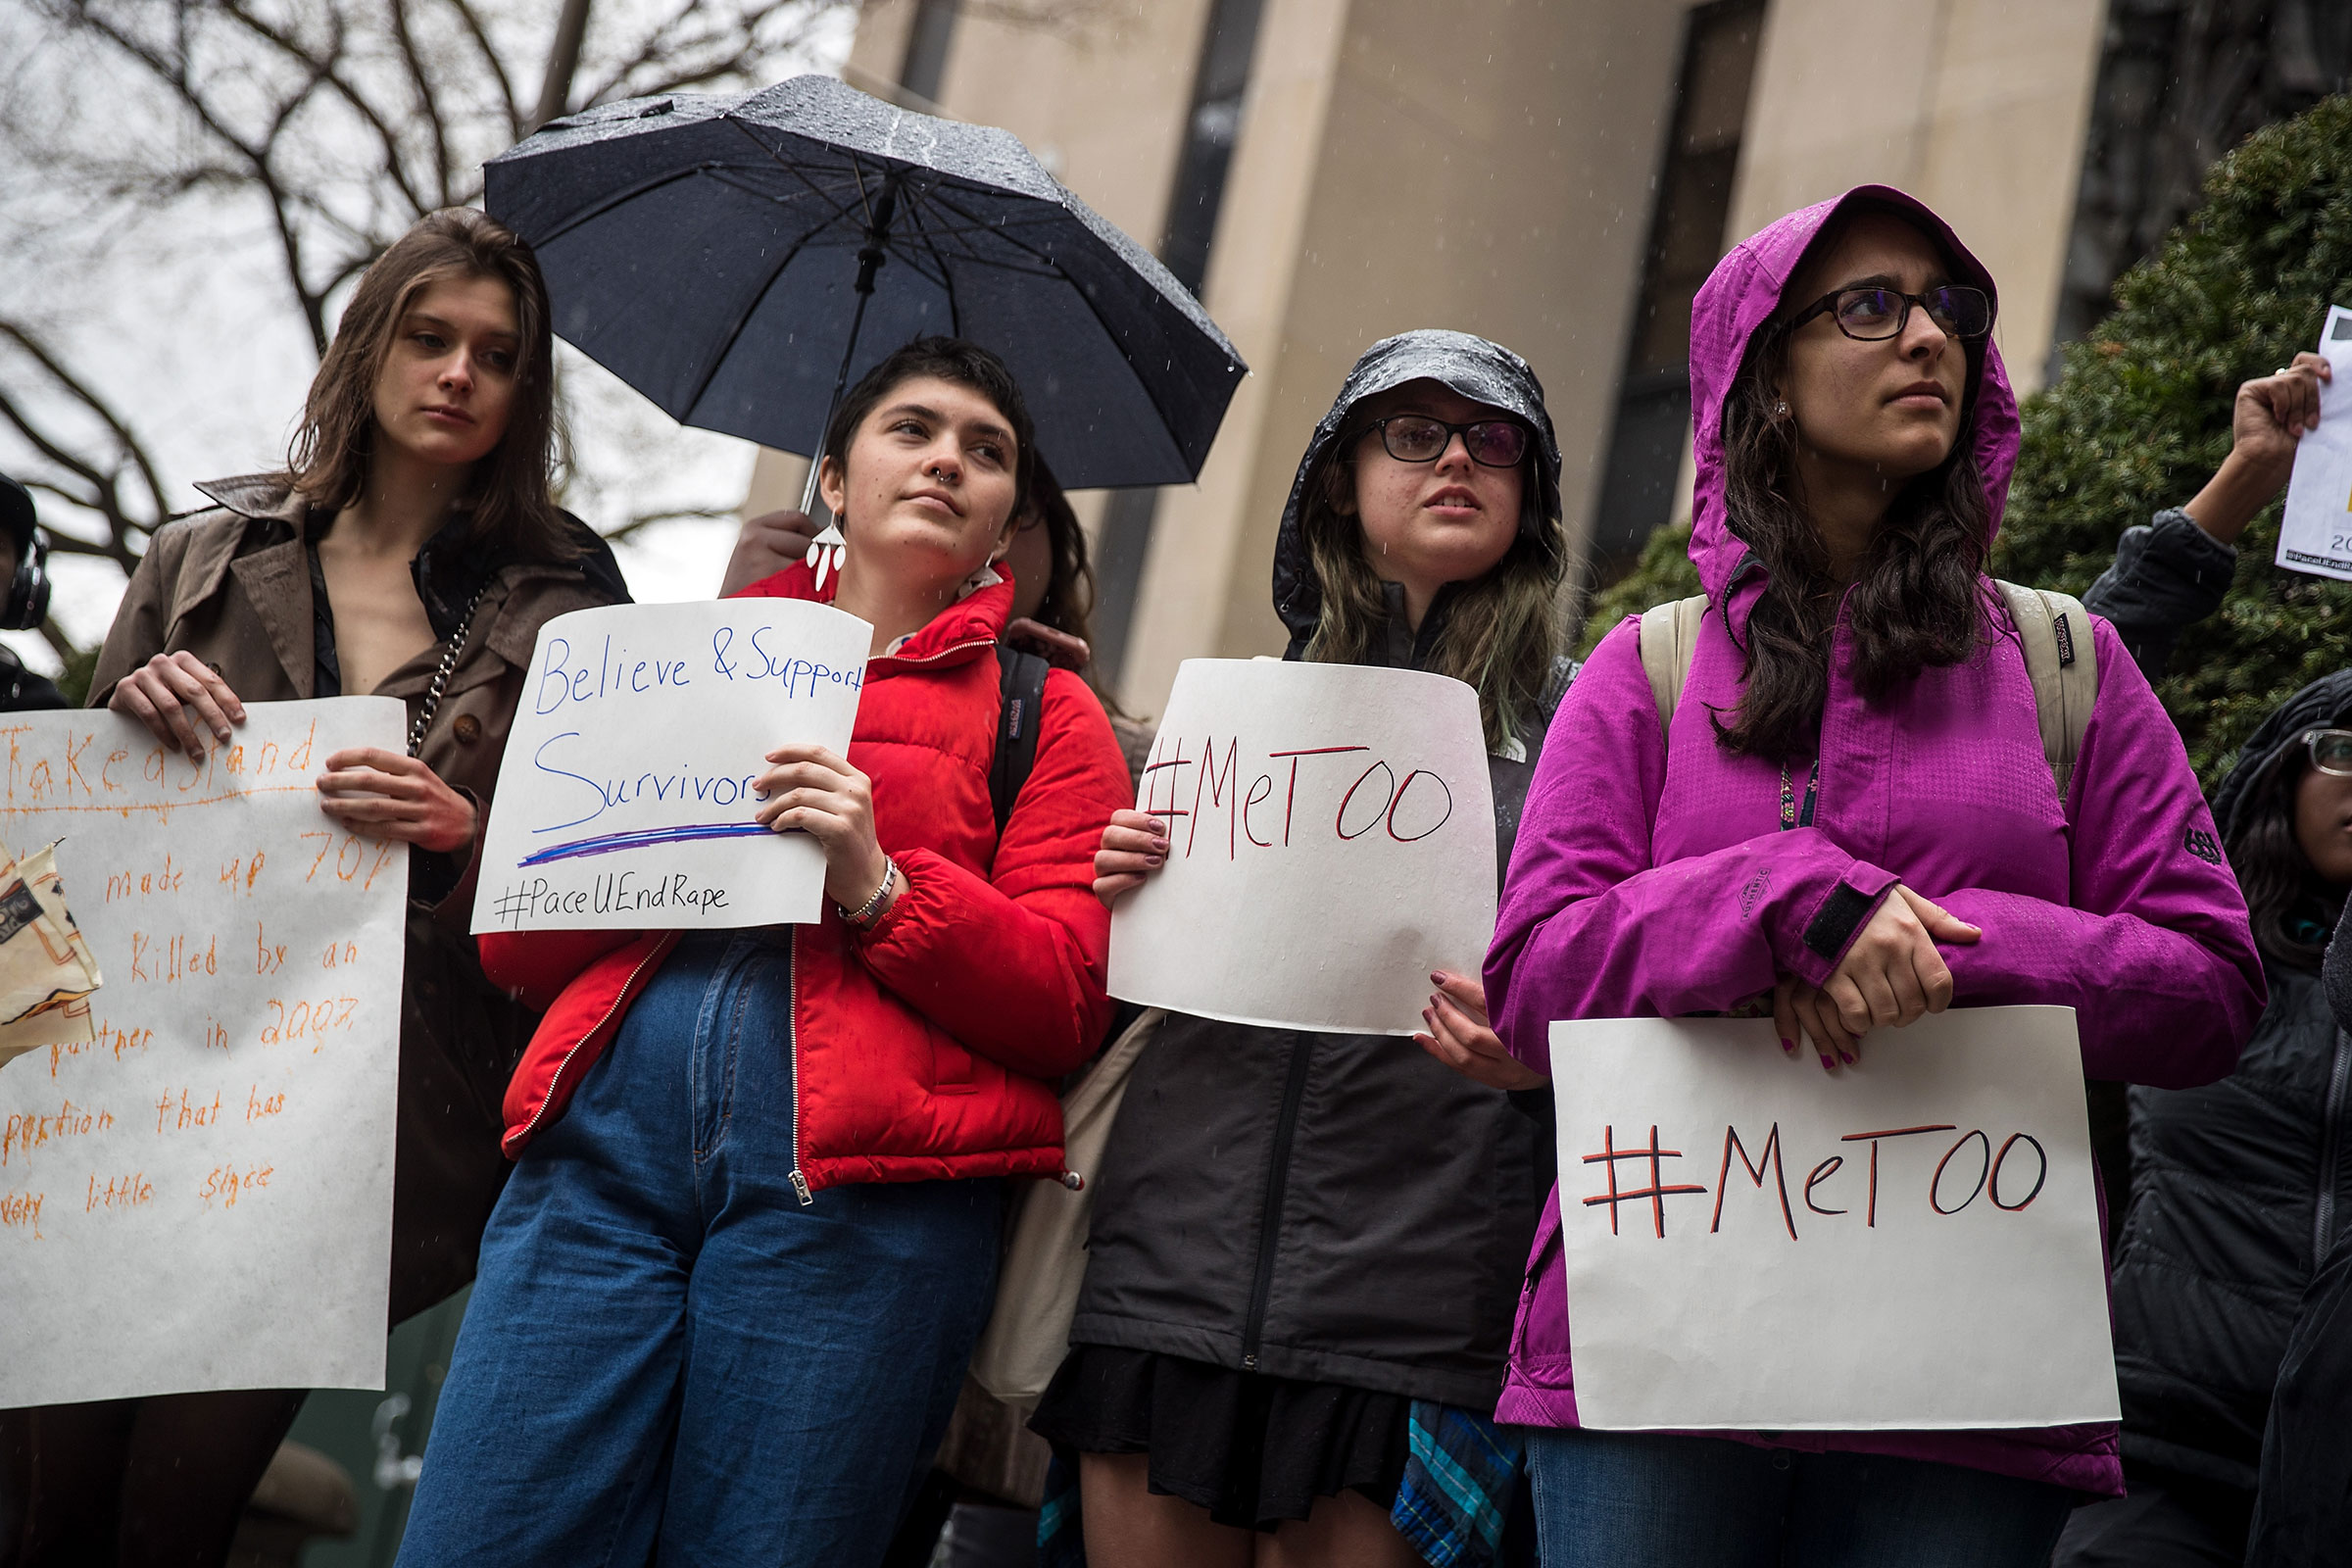 A small group of student activists from Pace University hold a rally against sexual violence after walking out of their classes on the campus of Pace University, on April 19, 2018 in New York City.